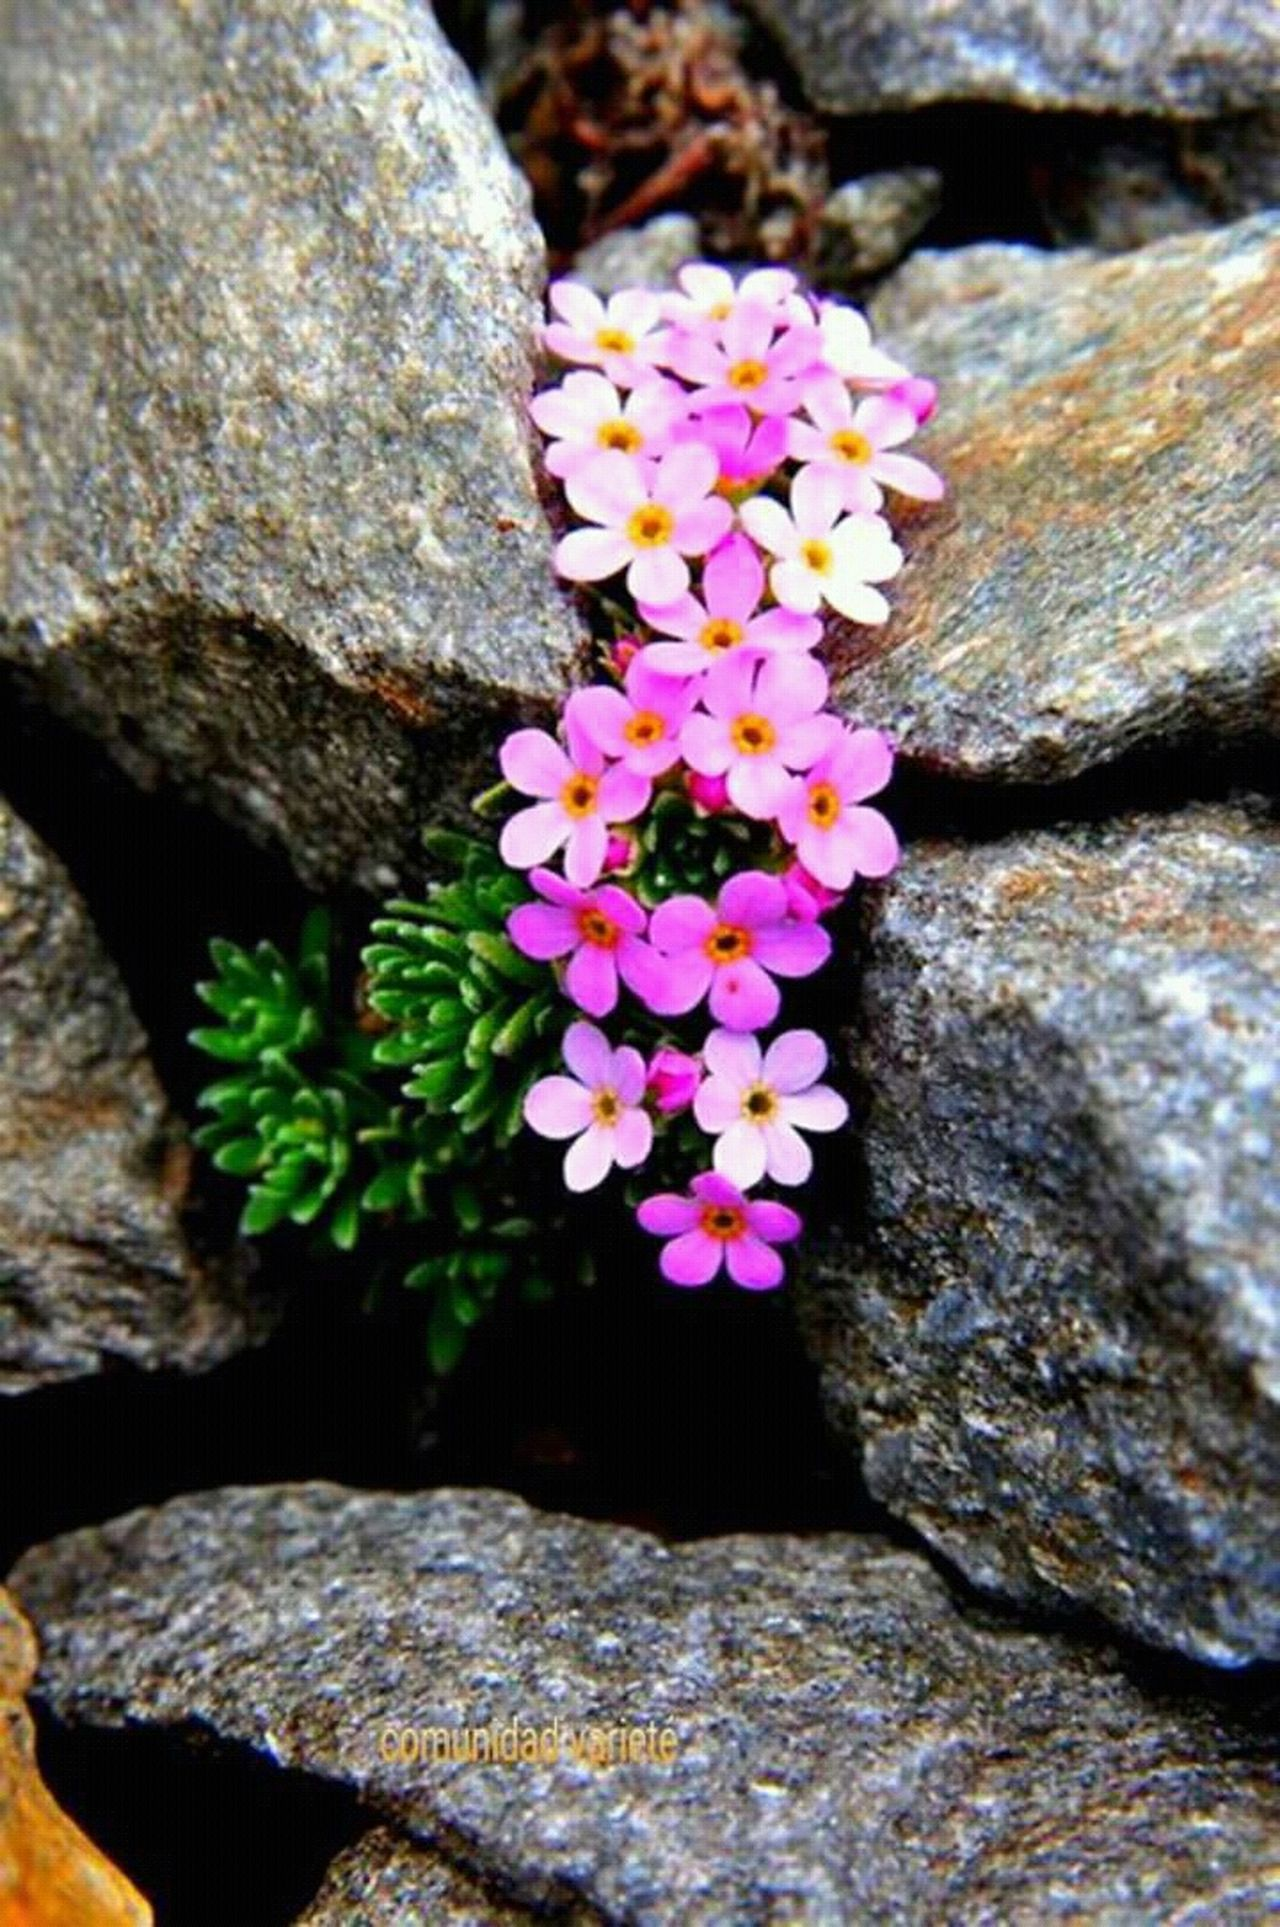 Flowers In The Rocks Flowers Love The Nature Hi! Eye4photography Shapshots Of Life Mood Capyures Great Atmosphere The Moment - 2015 EyeEm Awards Gold Series @txemabuenodaz Eye4photography  Hello World Hanging OutRelaxing